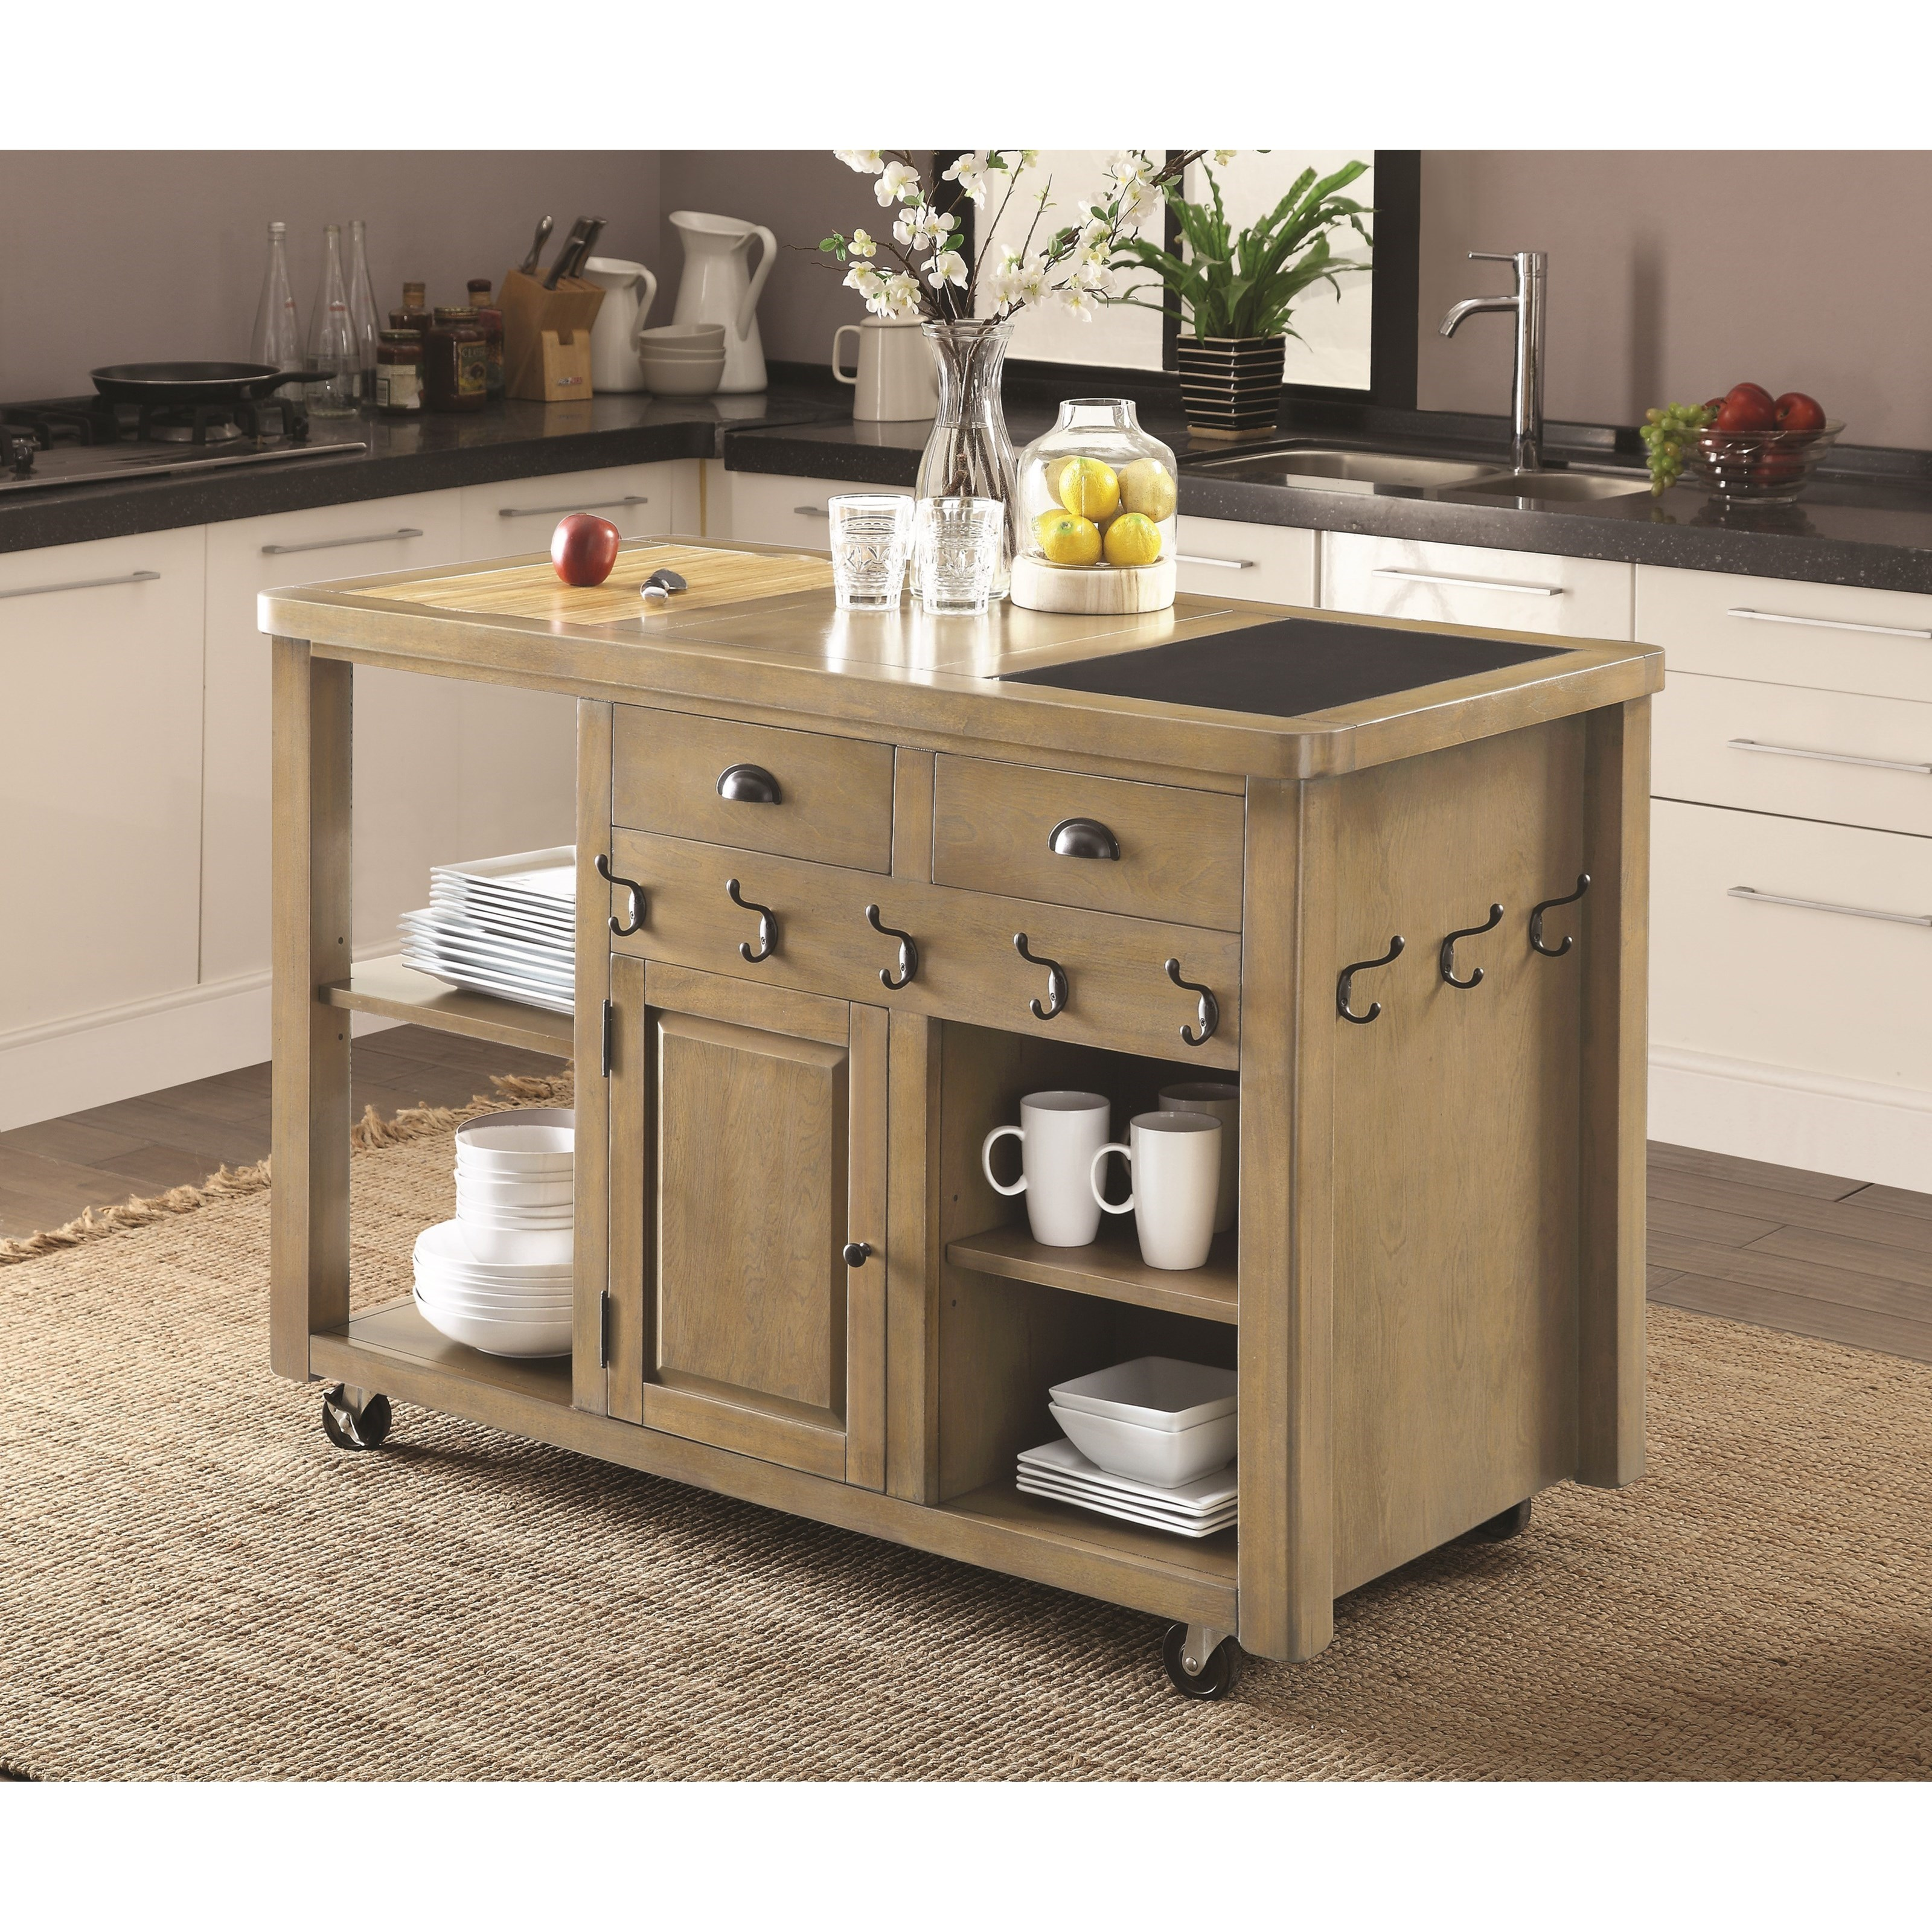 Coaster Kitchen Carts Weathered Kitchen Island with Casters Del